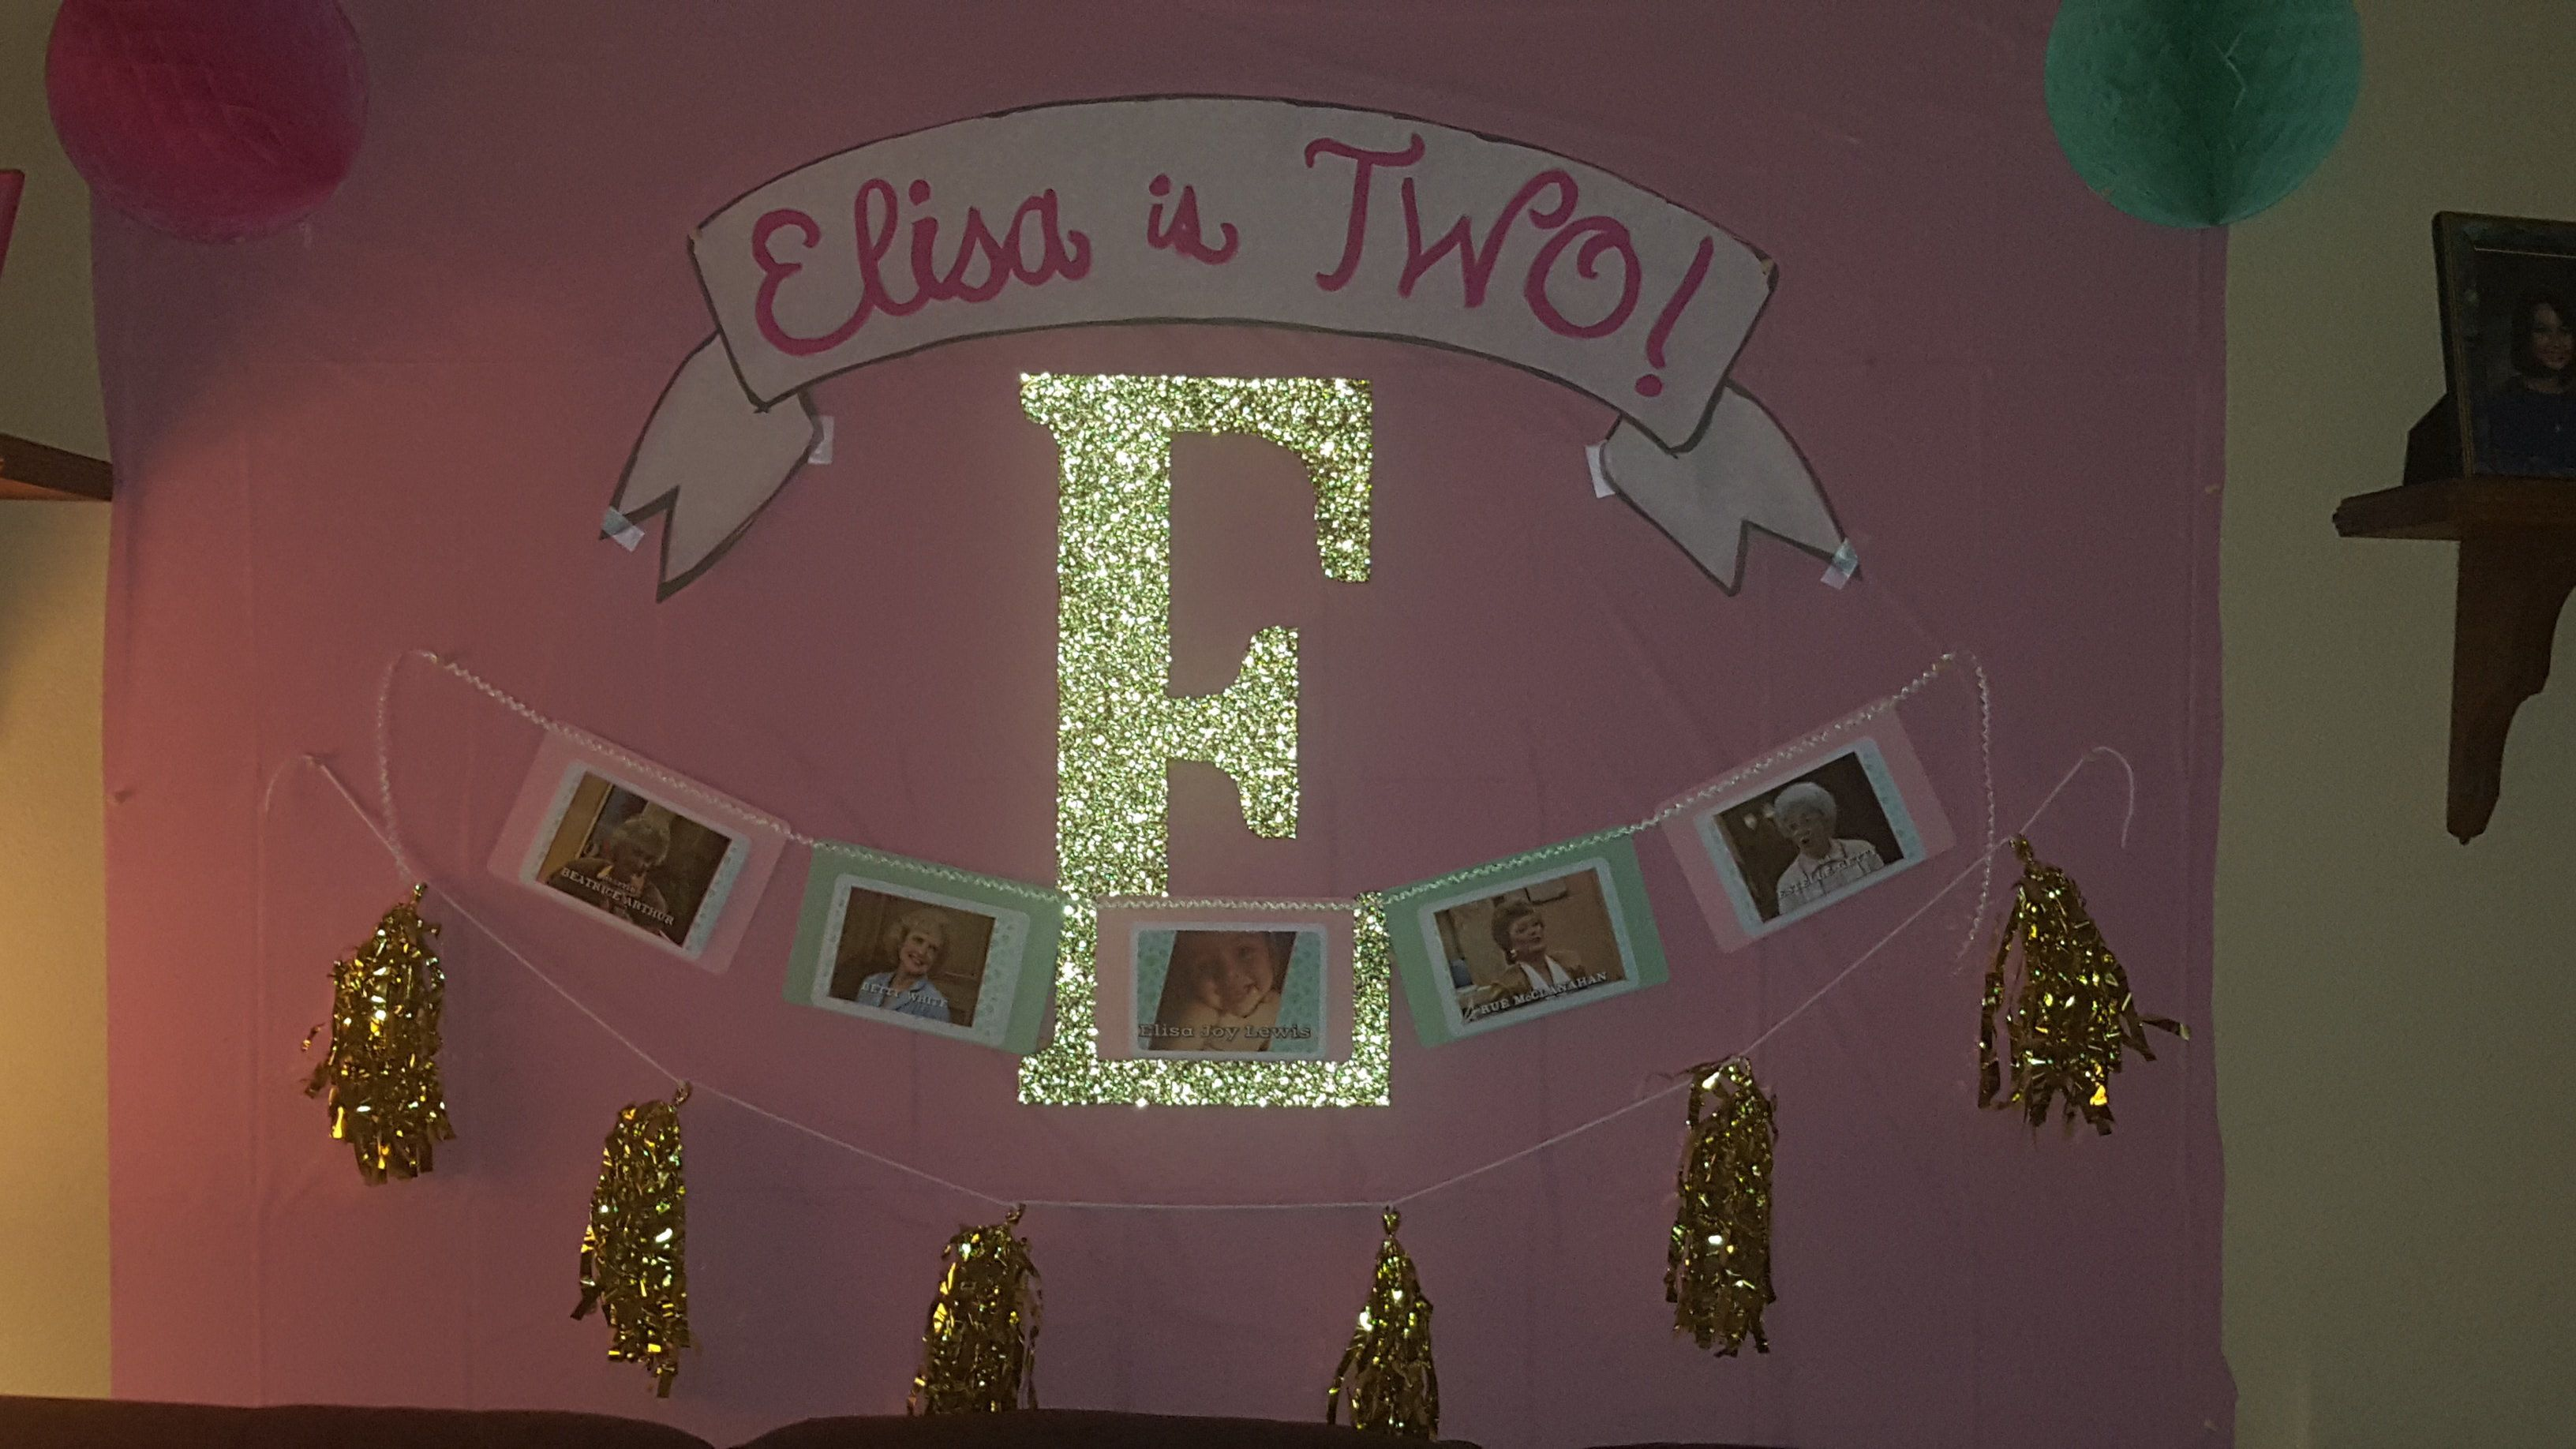 She made special banners with photos of the four ladies and Elisa.